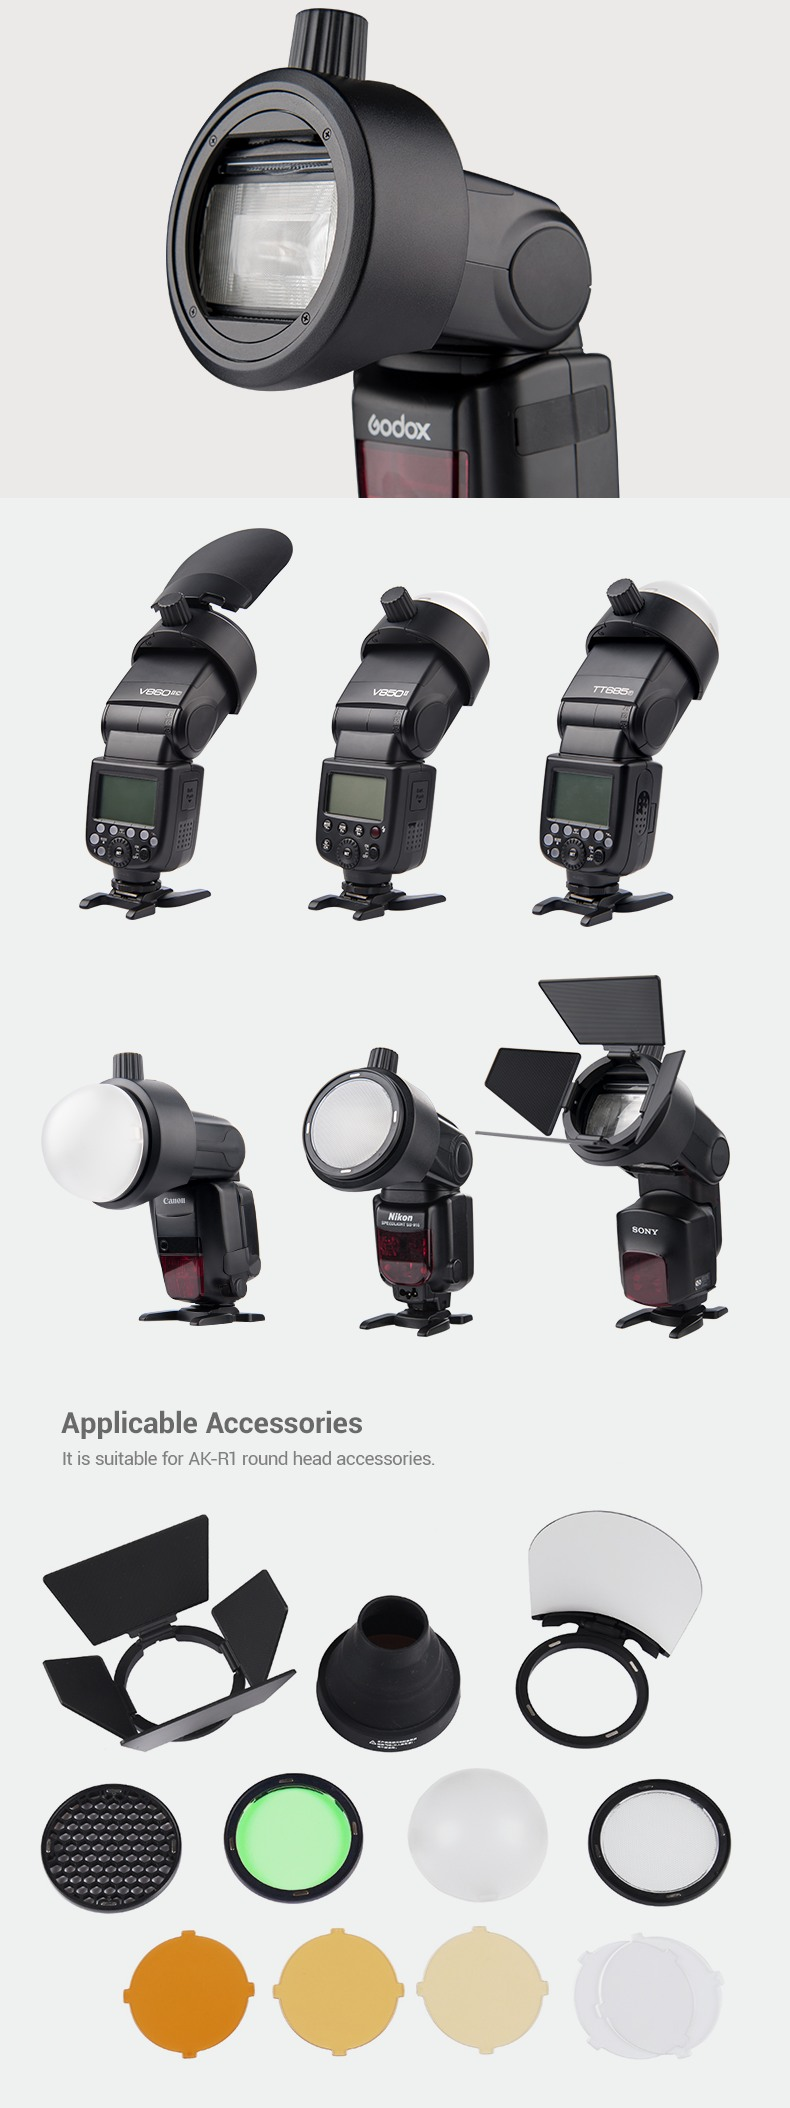 Godox S-R1 applicable Accesories